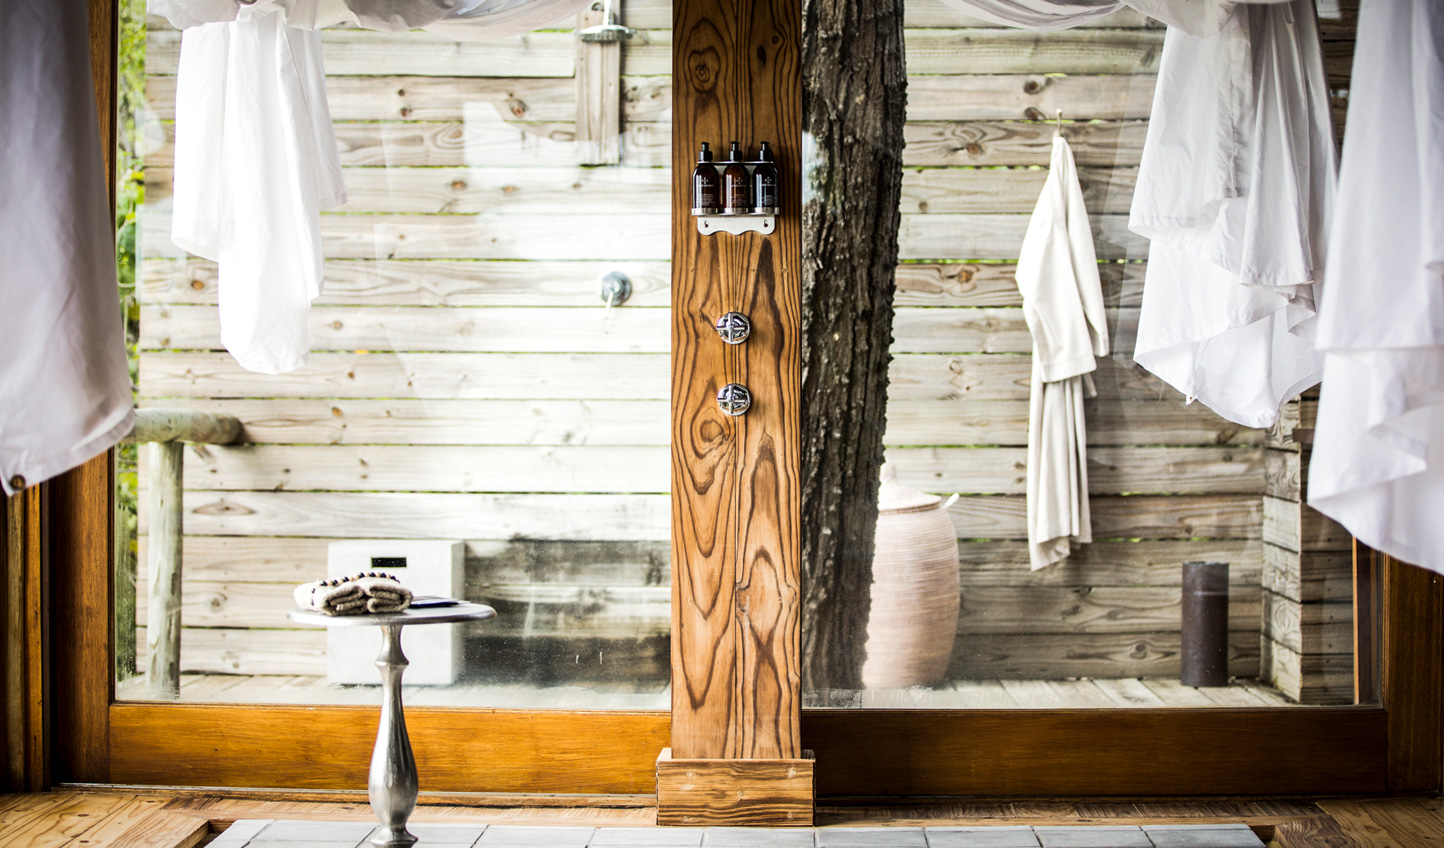 Indoor and outdoor showers allow you to get in touch with nature